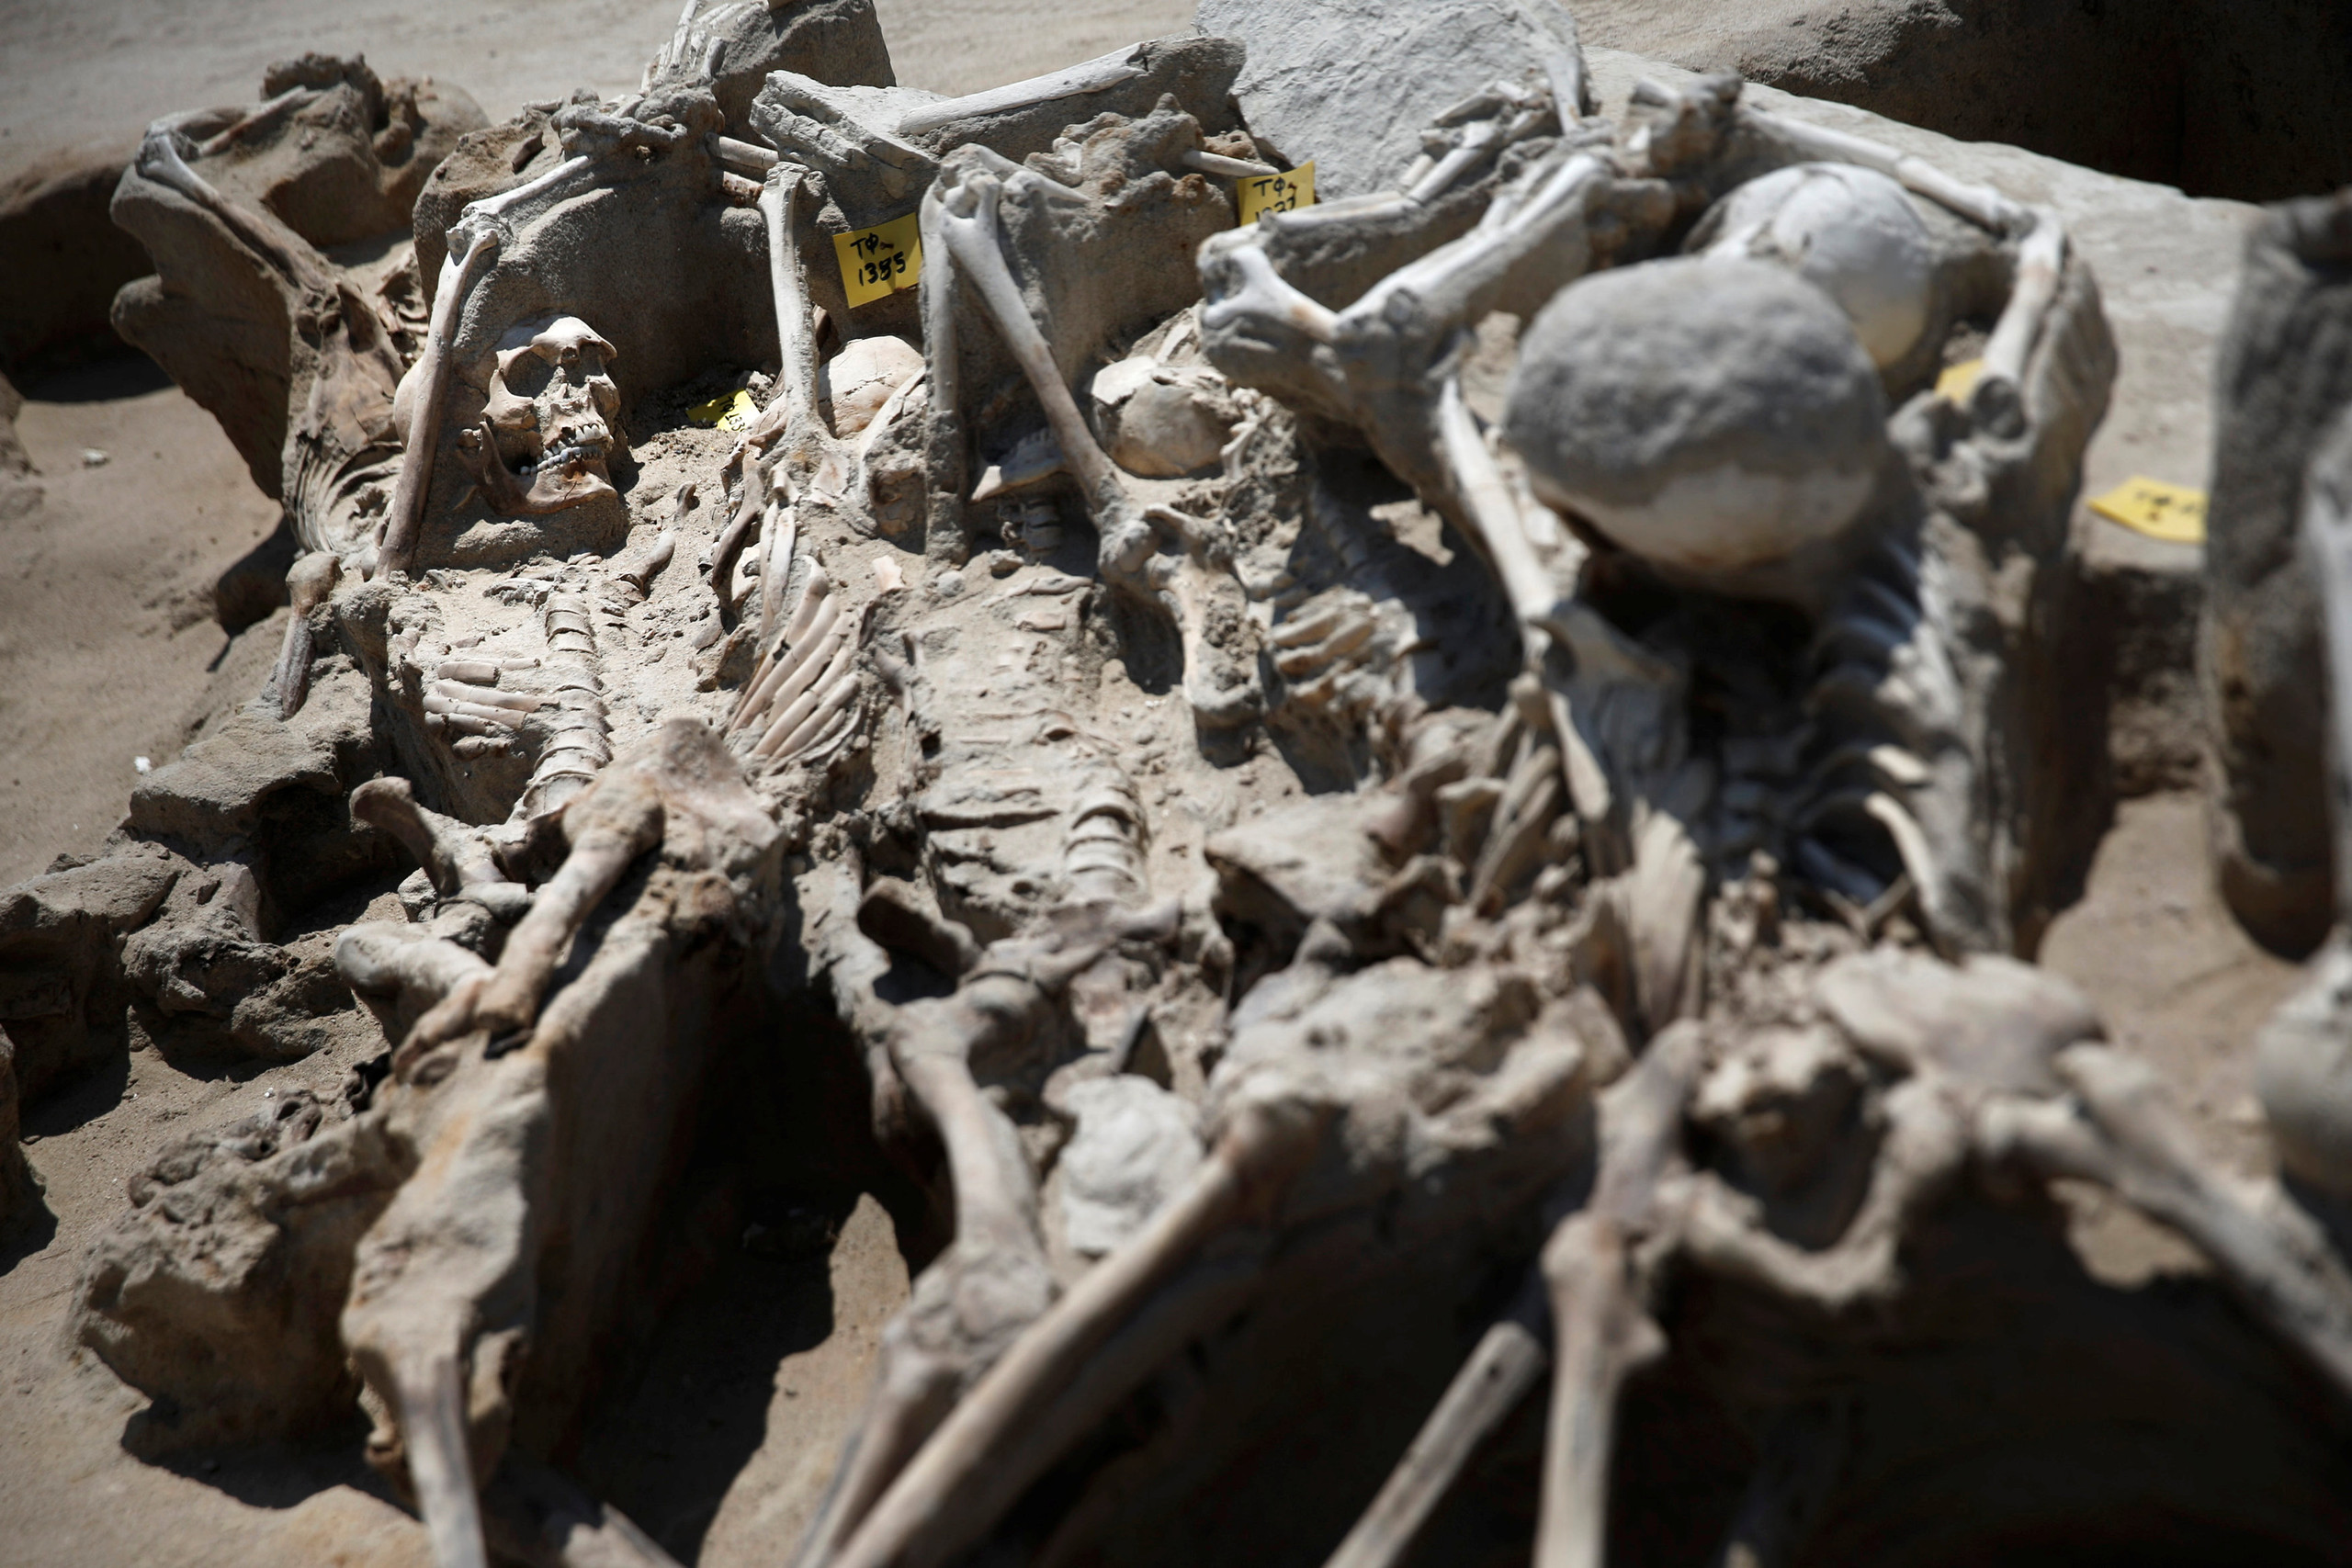 Skeletal remains, with iron shackles on their wrists, are piled on top of each other at the ancient Falyron Delta cemetery in Athens, Greece, July 27, 2016. Picture taken July 27, 2016. REUTERS/Alkis Konstantinidis